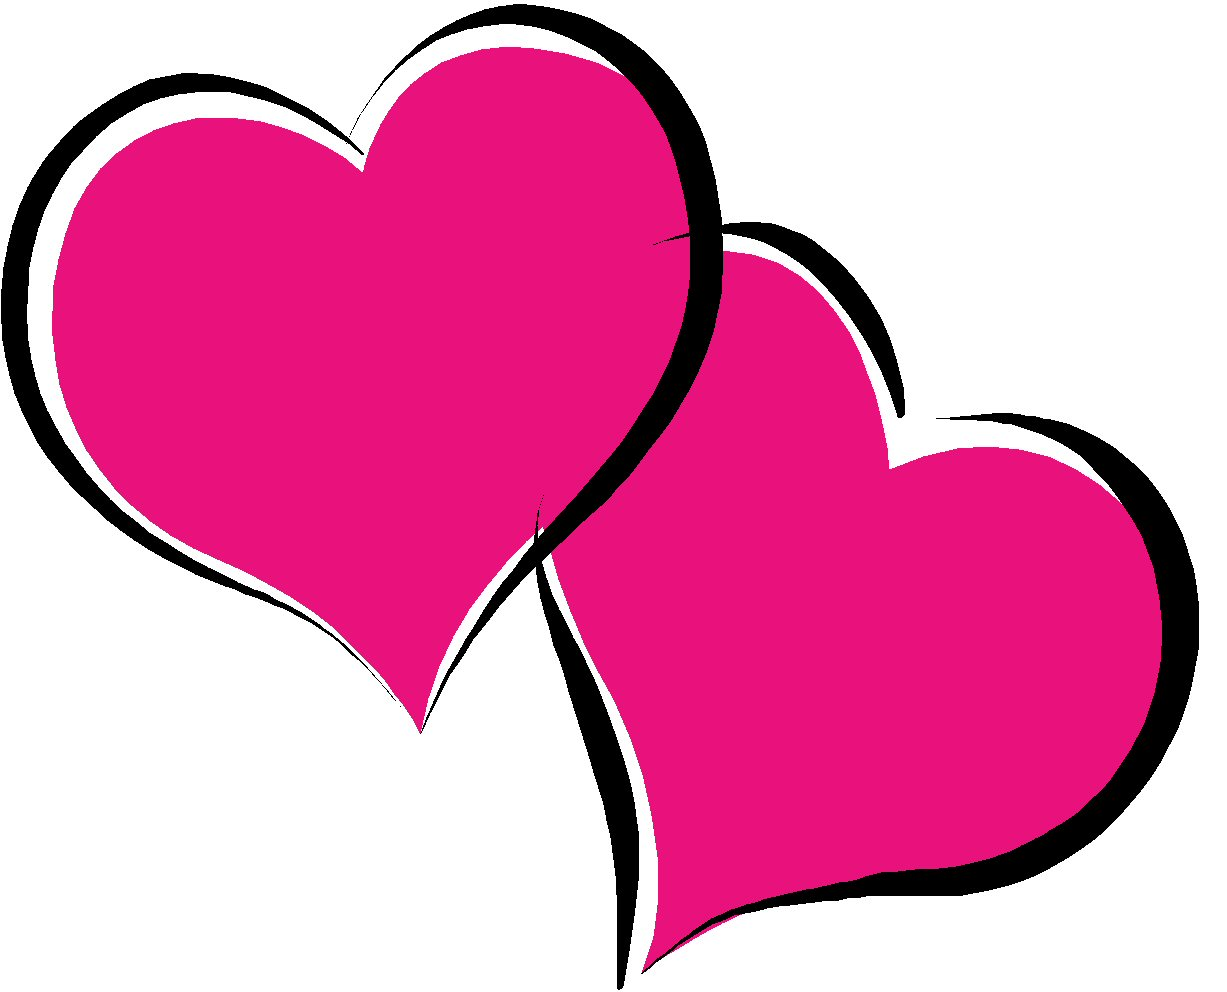 Heart clipart. Hearts free images clipartix